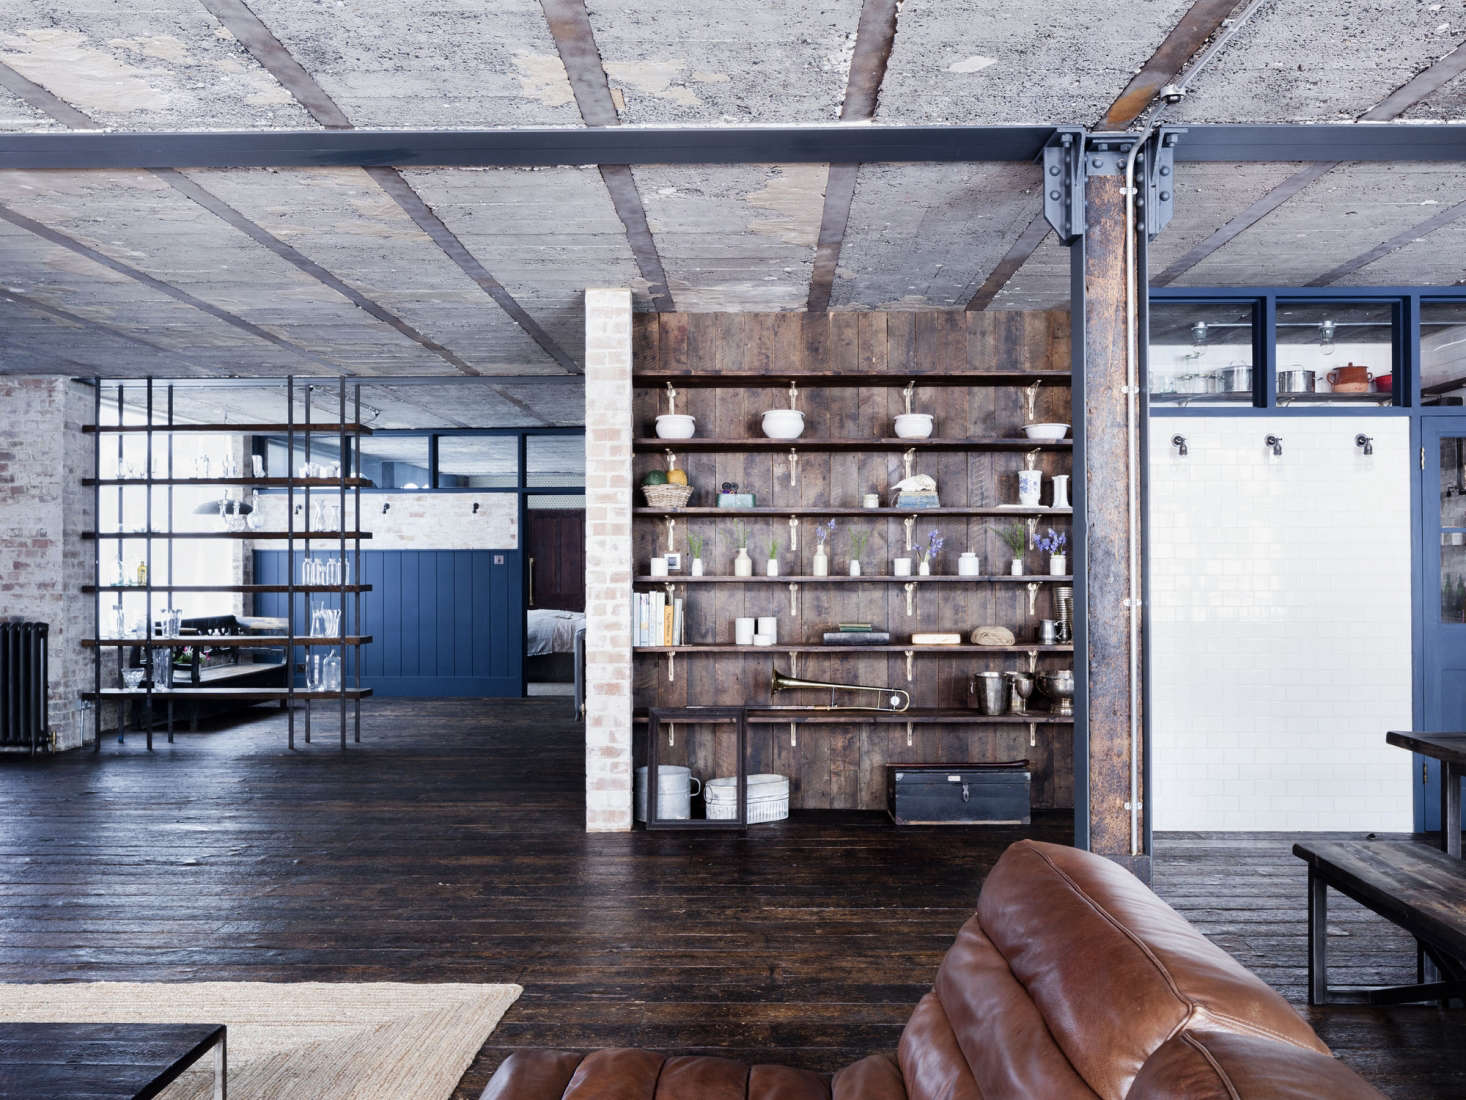 London loft hoxton square by mark lewis interior design